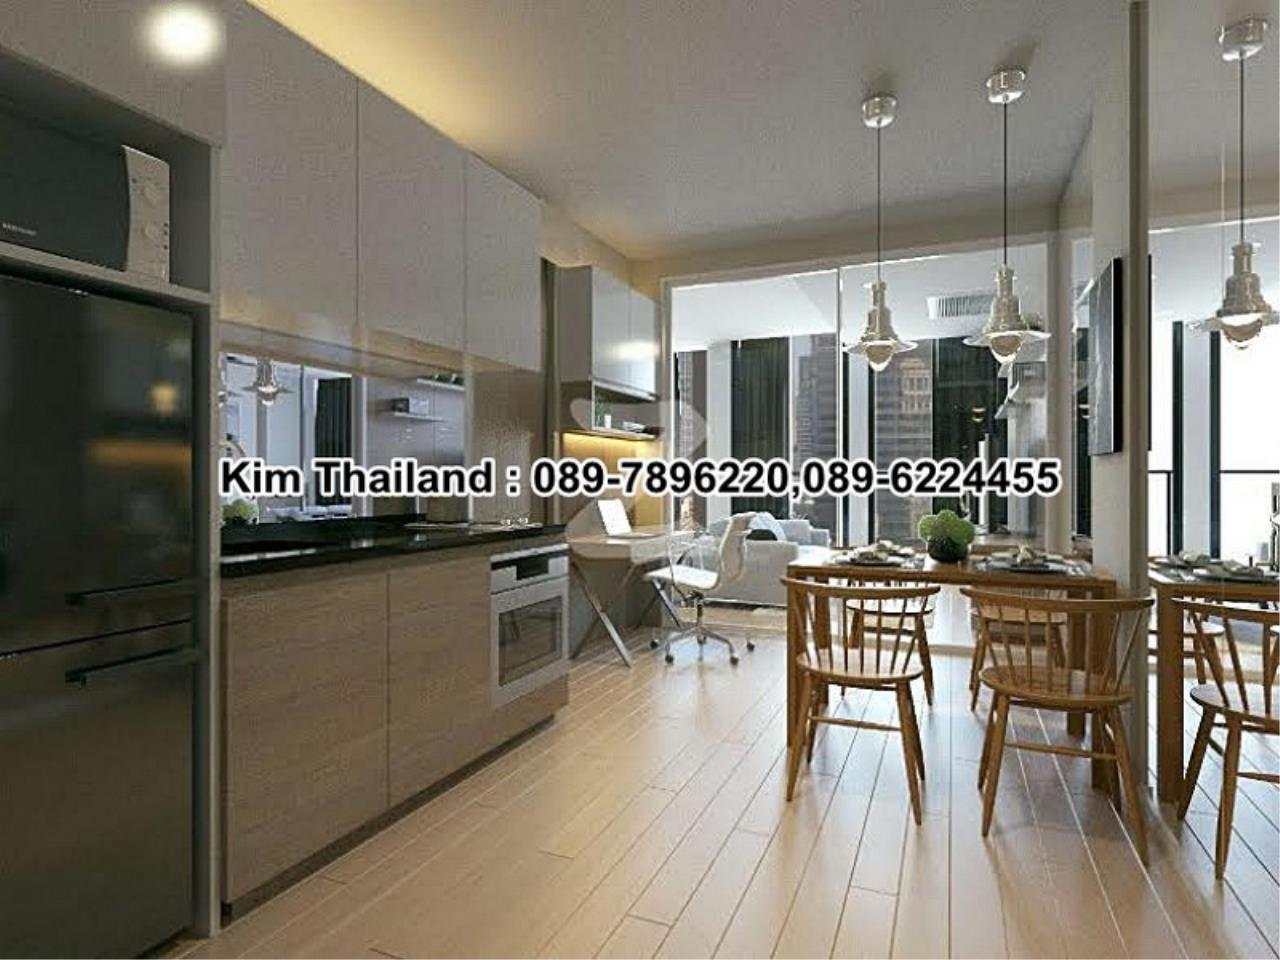 BKKcondorental Agency's For sale, Condo Noble Ploenchit , 49 s.qm. 1 bathroom. Price 14.5 Million baht. 8